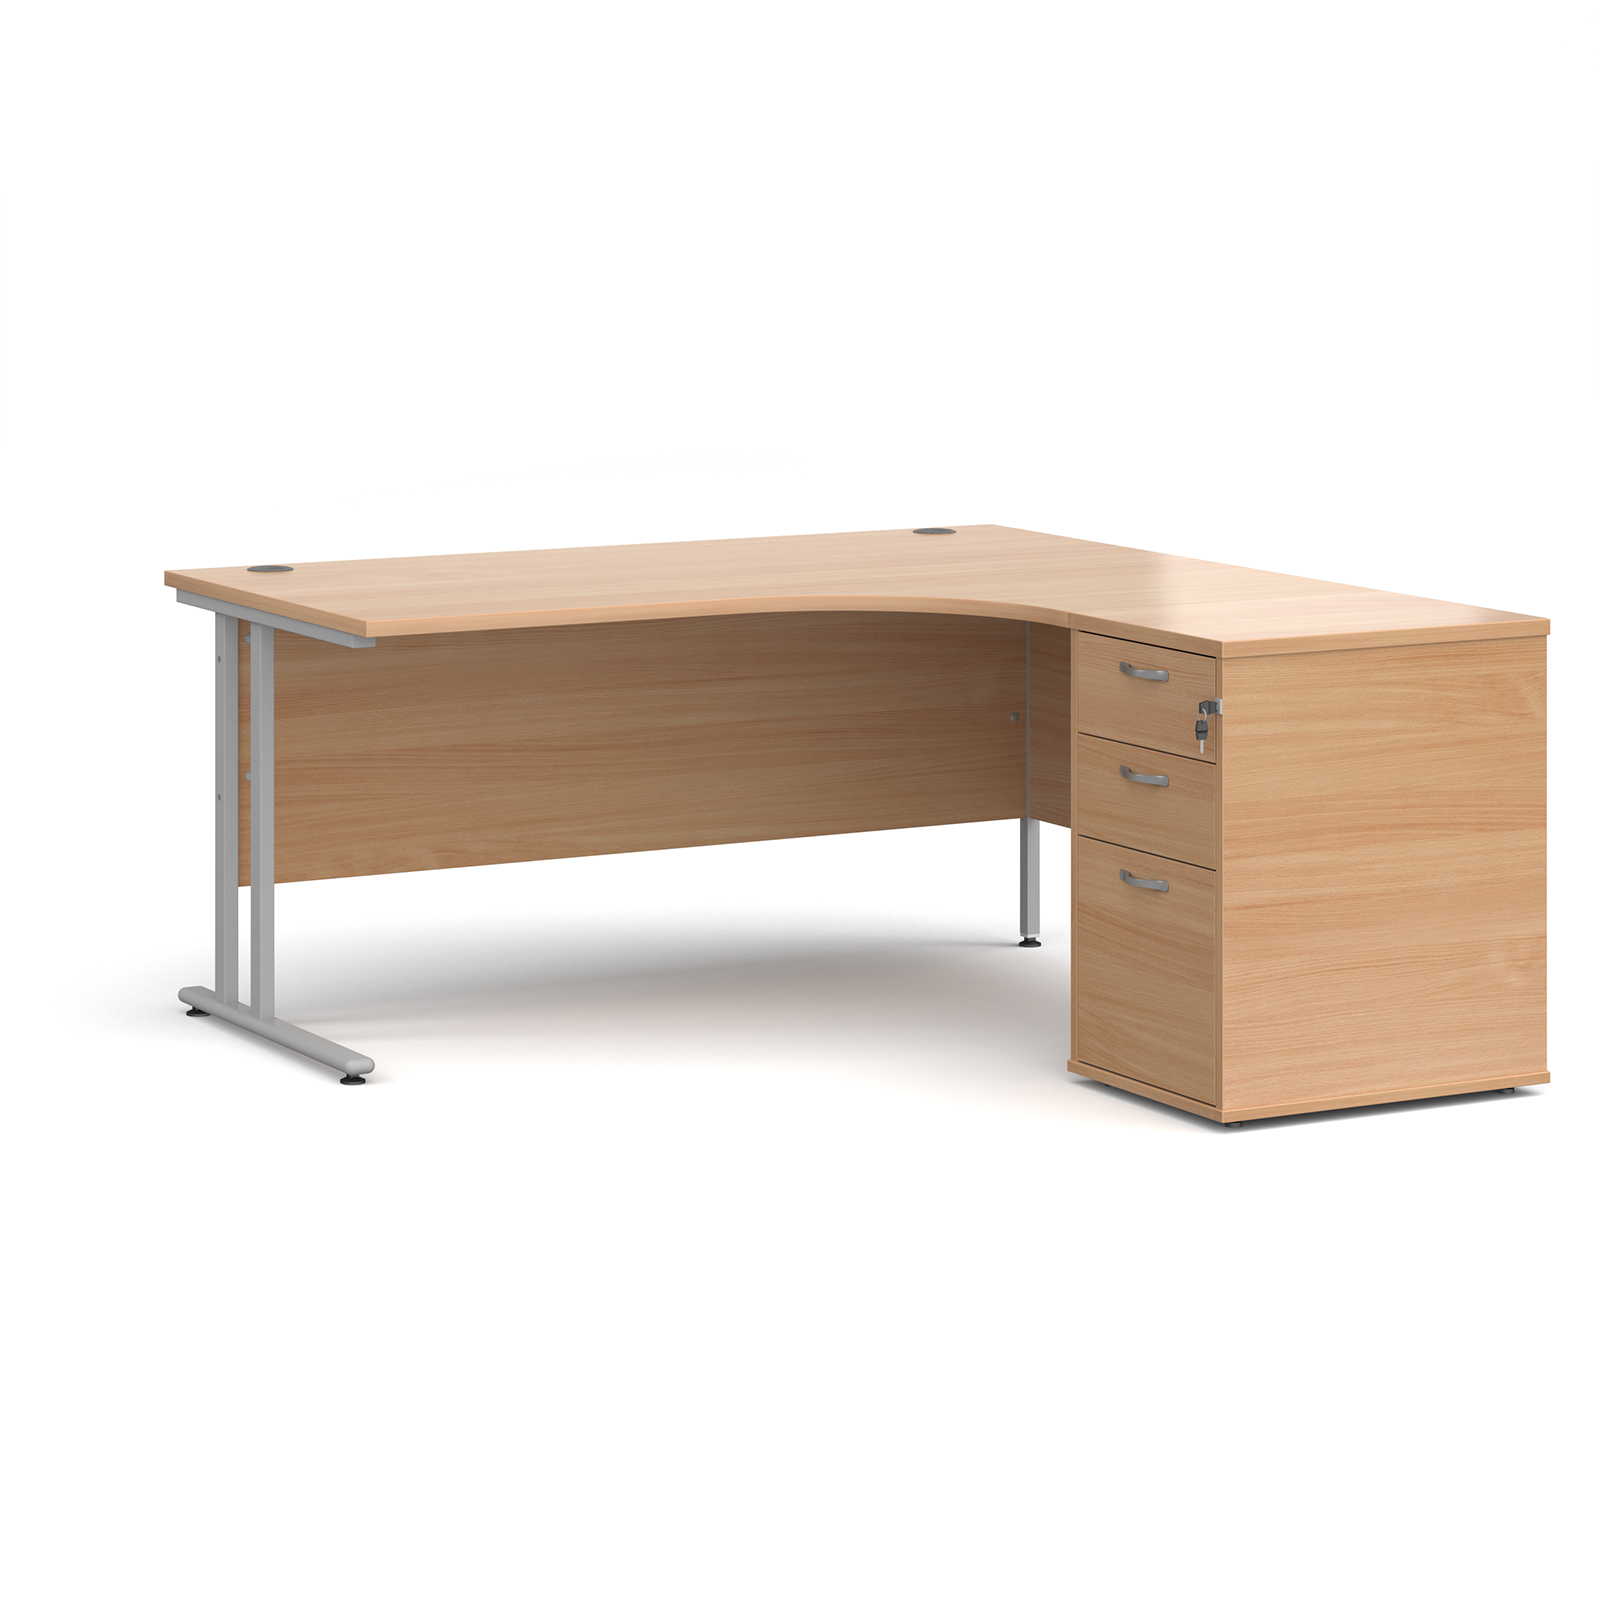 Right Handed Maestro 25 right hand ergonomic desk 1600mm with silver cantilever frame and desk high pedestal - beech